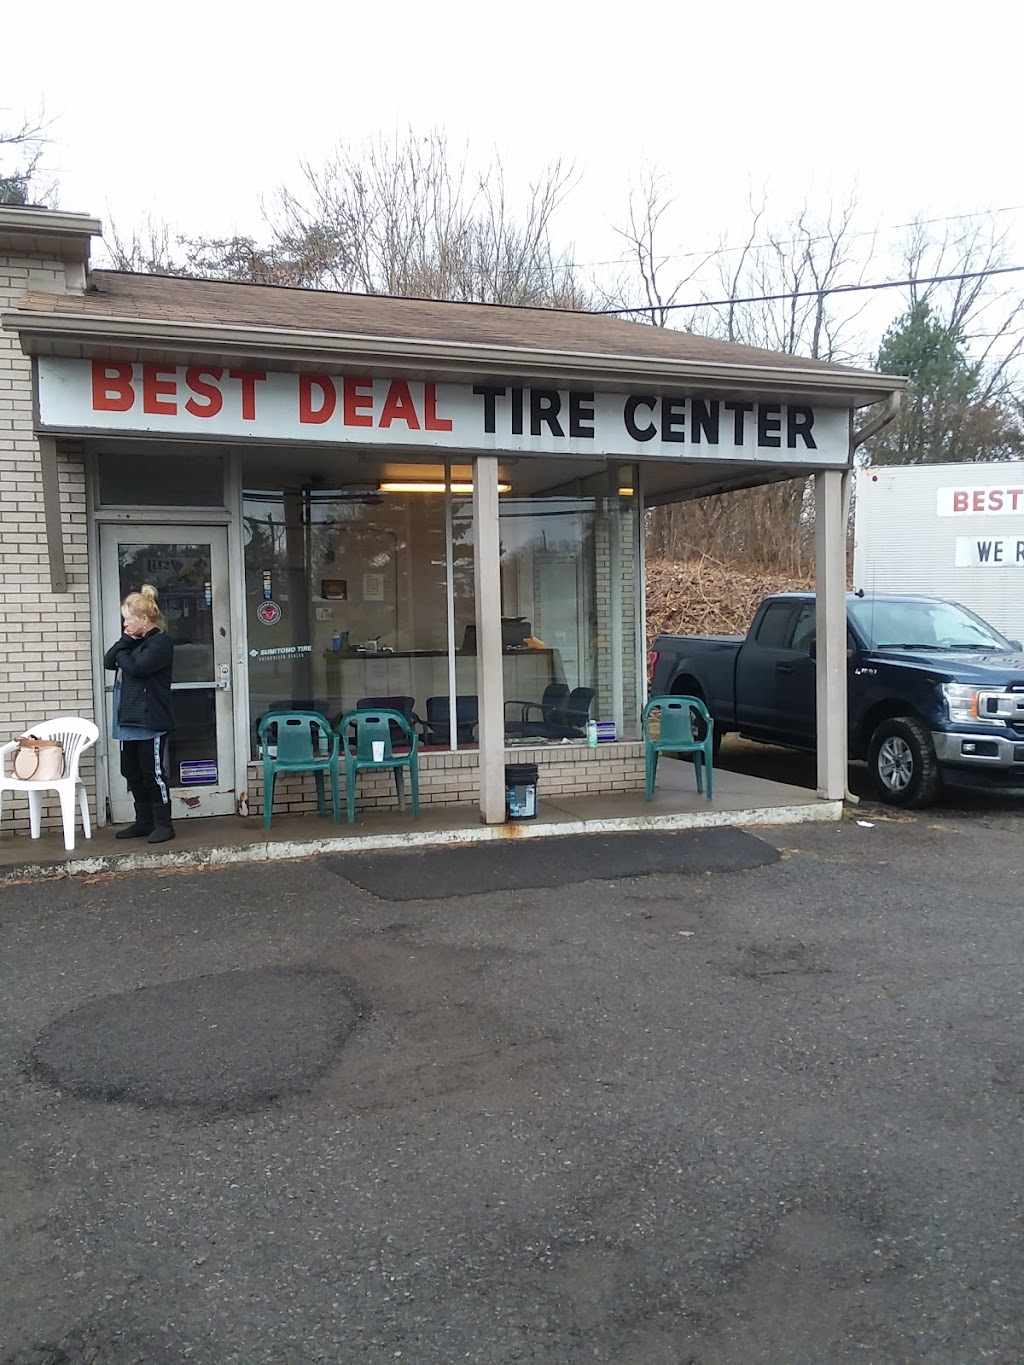 Best Deal Tire Center - car repair    Photo 3 of 7   Address: 89 Clever Rd, McKees Rocks, PA 15136, USA   Phone: (412) 331-1012